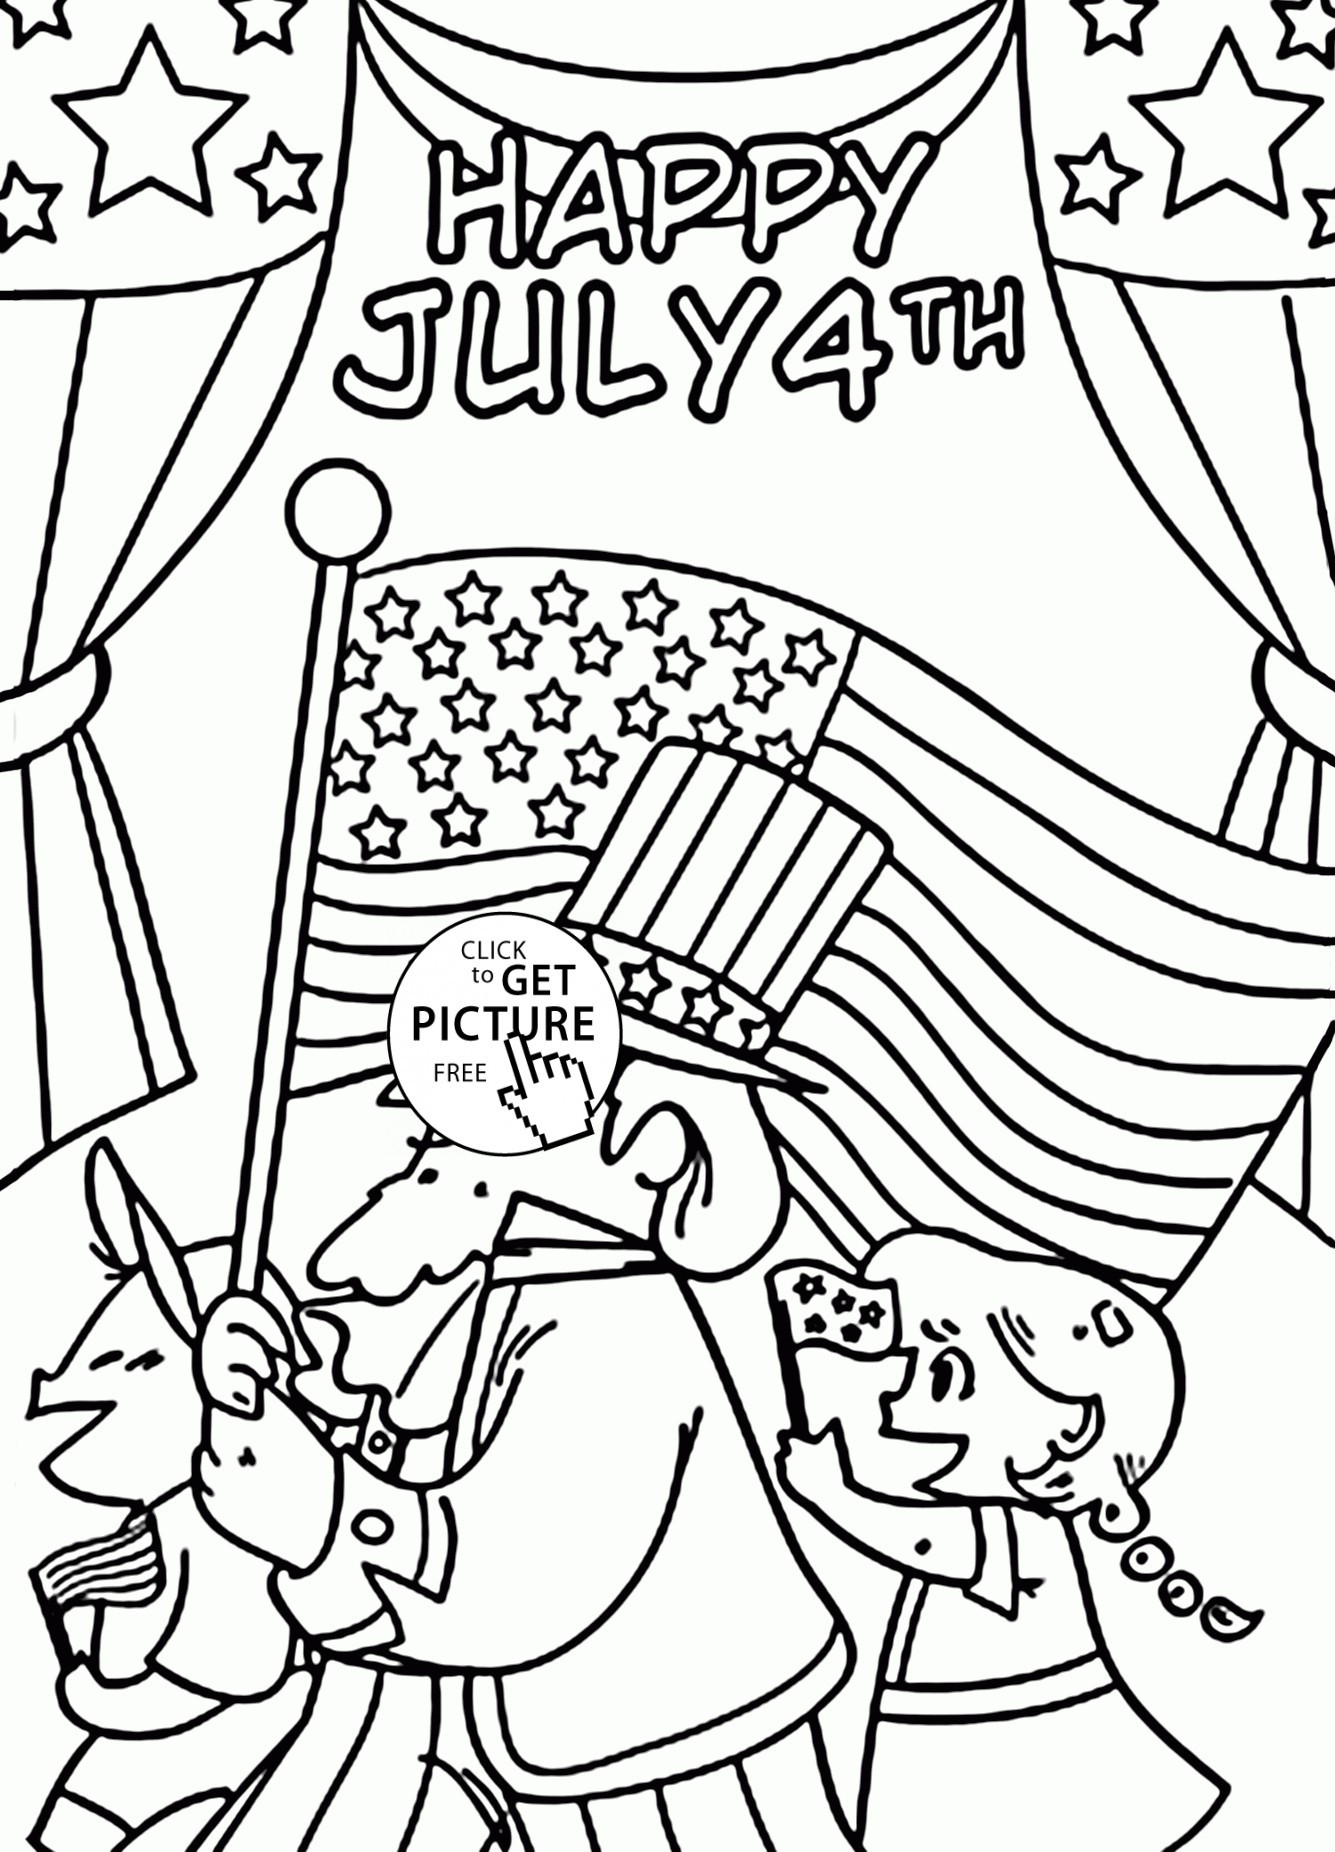 coloring pages 4th of july printable Collection-Free Printable 4th July Coloring Pages Independence Day Coloring Pages Printable New Preschool Printable 16-m